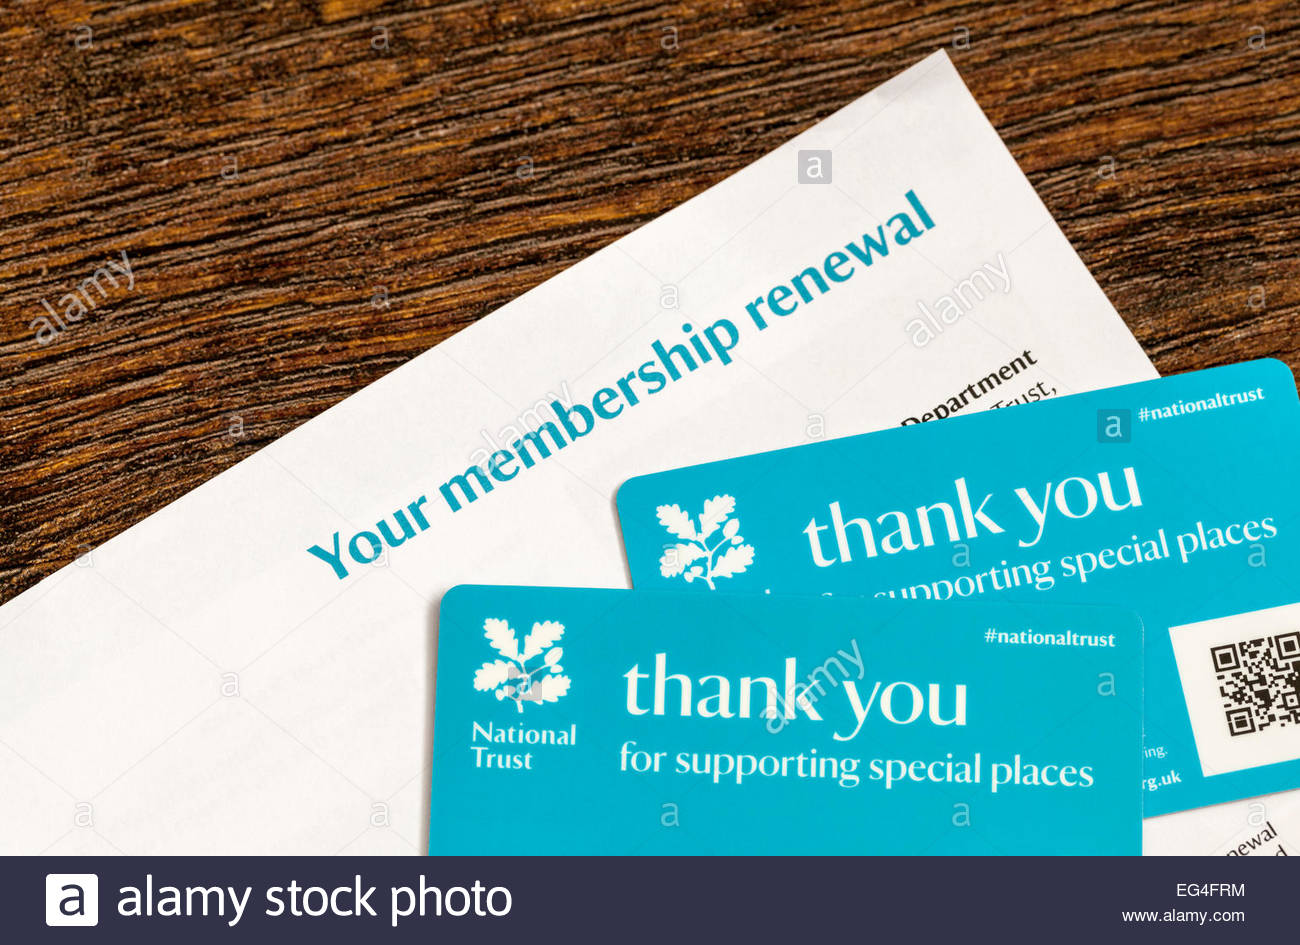 Stock Photo National Trust Membership Cards For Editorial Use 78776200 in addition Screenshots moreover Adrianalima2 moreover 282076667 Figuur 7 Amslerkaart likewise Colour Chart. on instructions